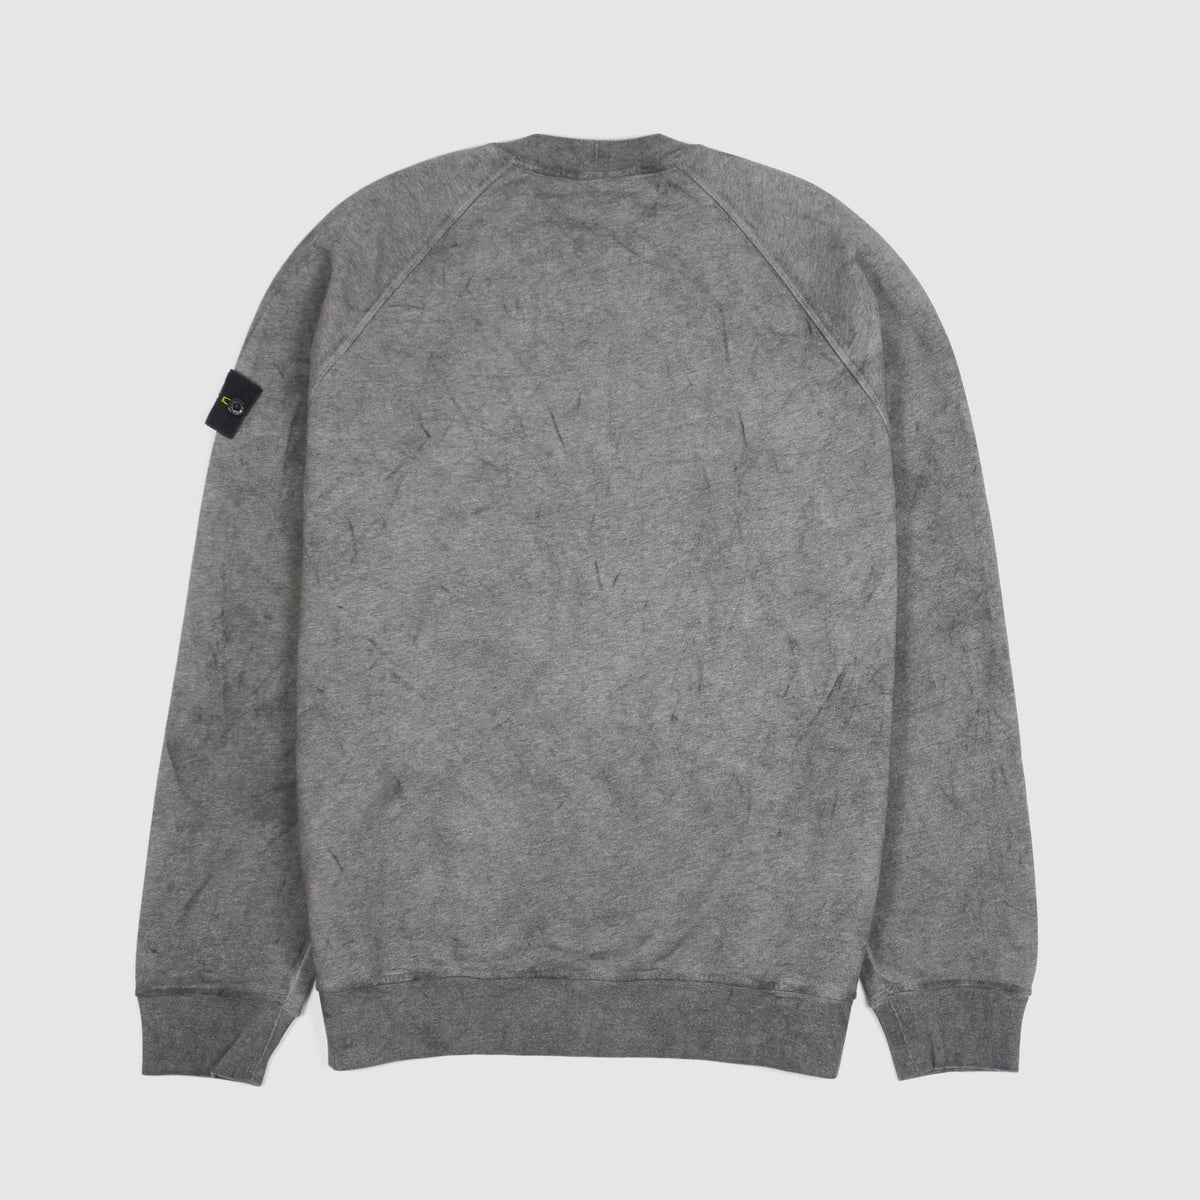 Stone Island Dust Color Crew Neck Sweatshirt